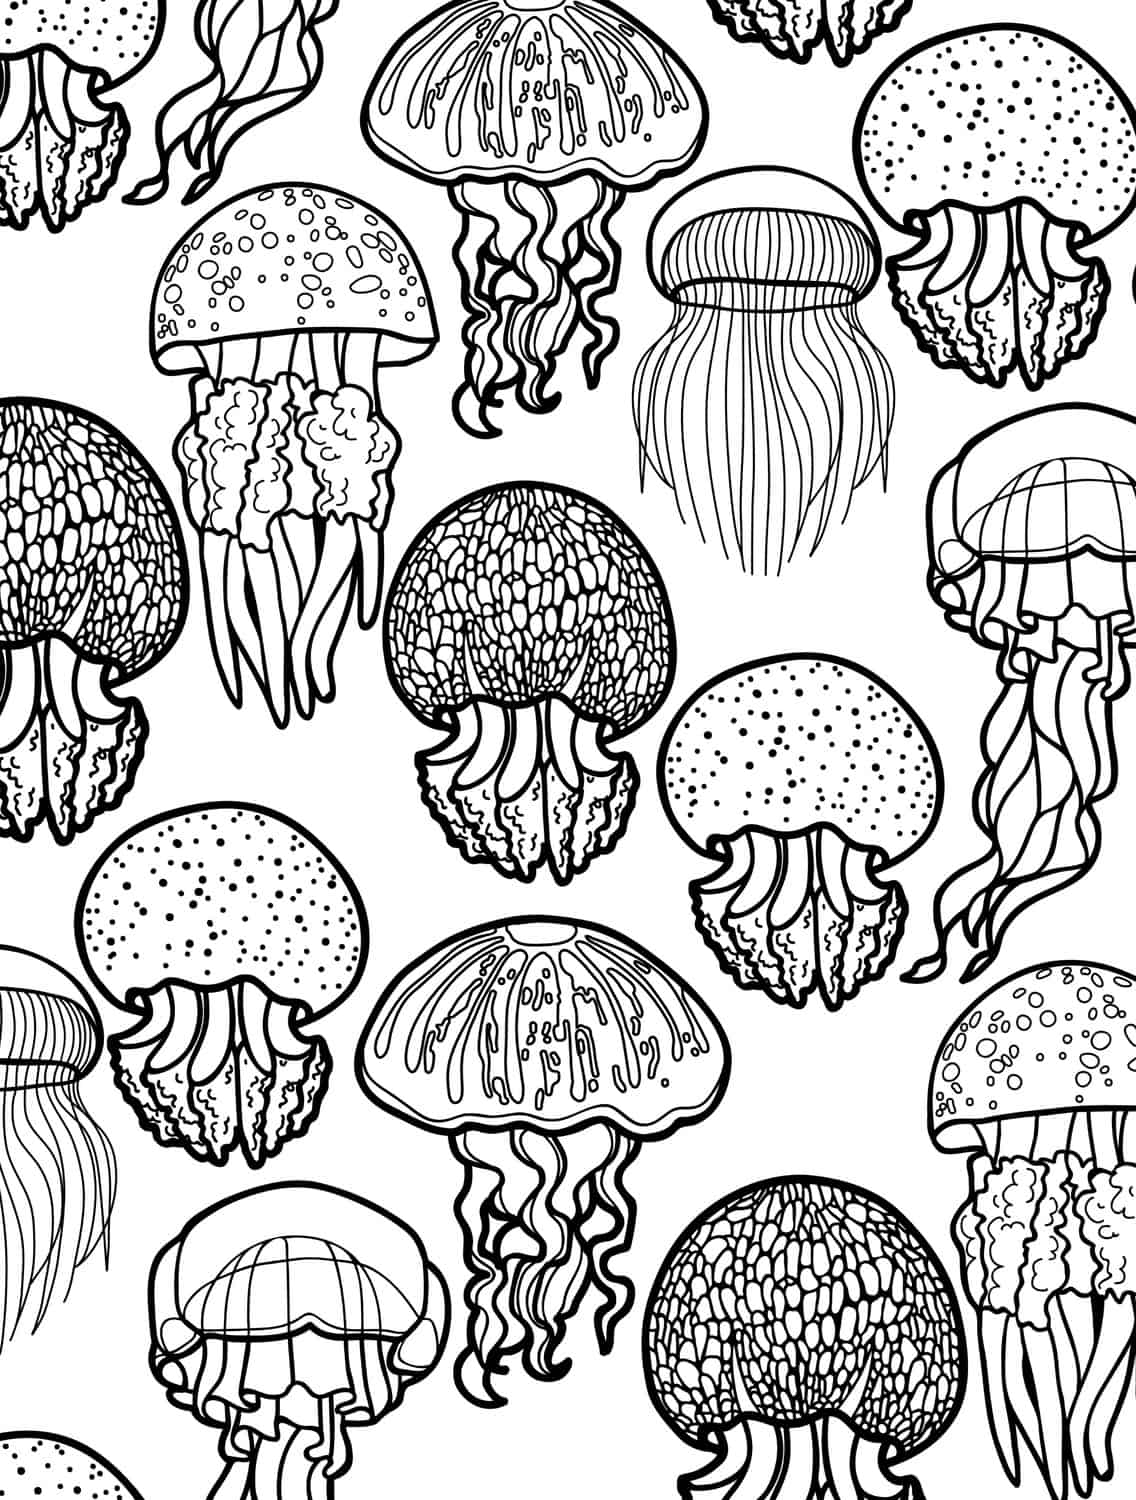 Ocean Coloring Pages For Adults 23 Free Printable Insect & Animal Adult Coloring Pages  Page 8 Of .